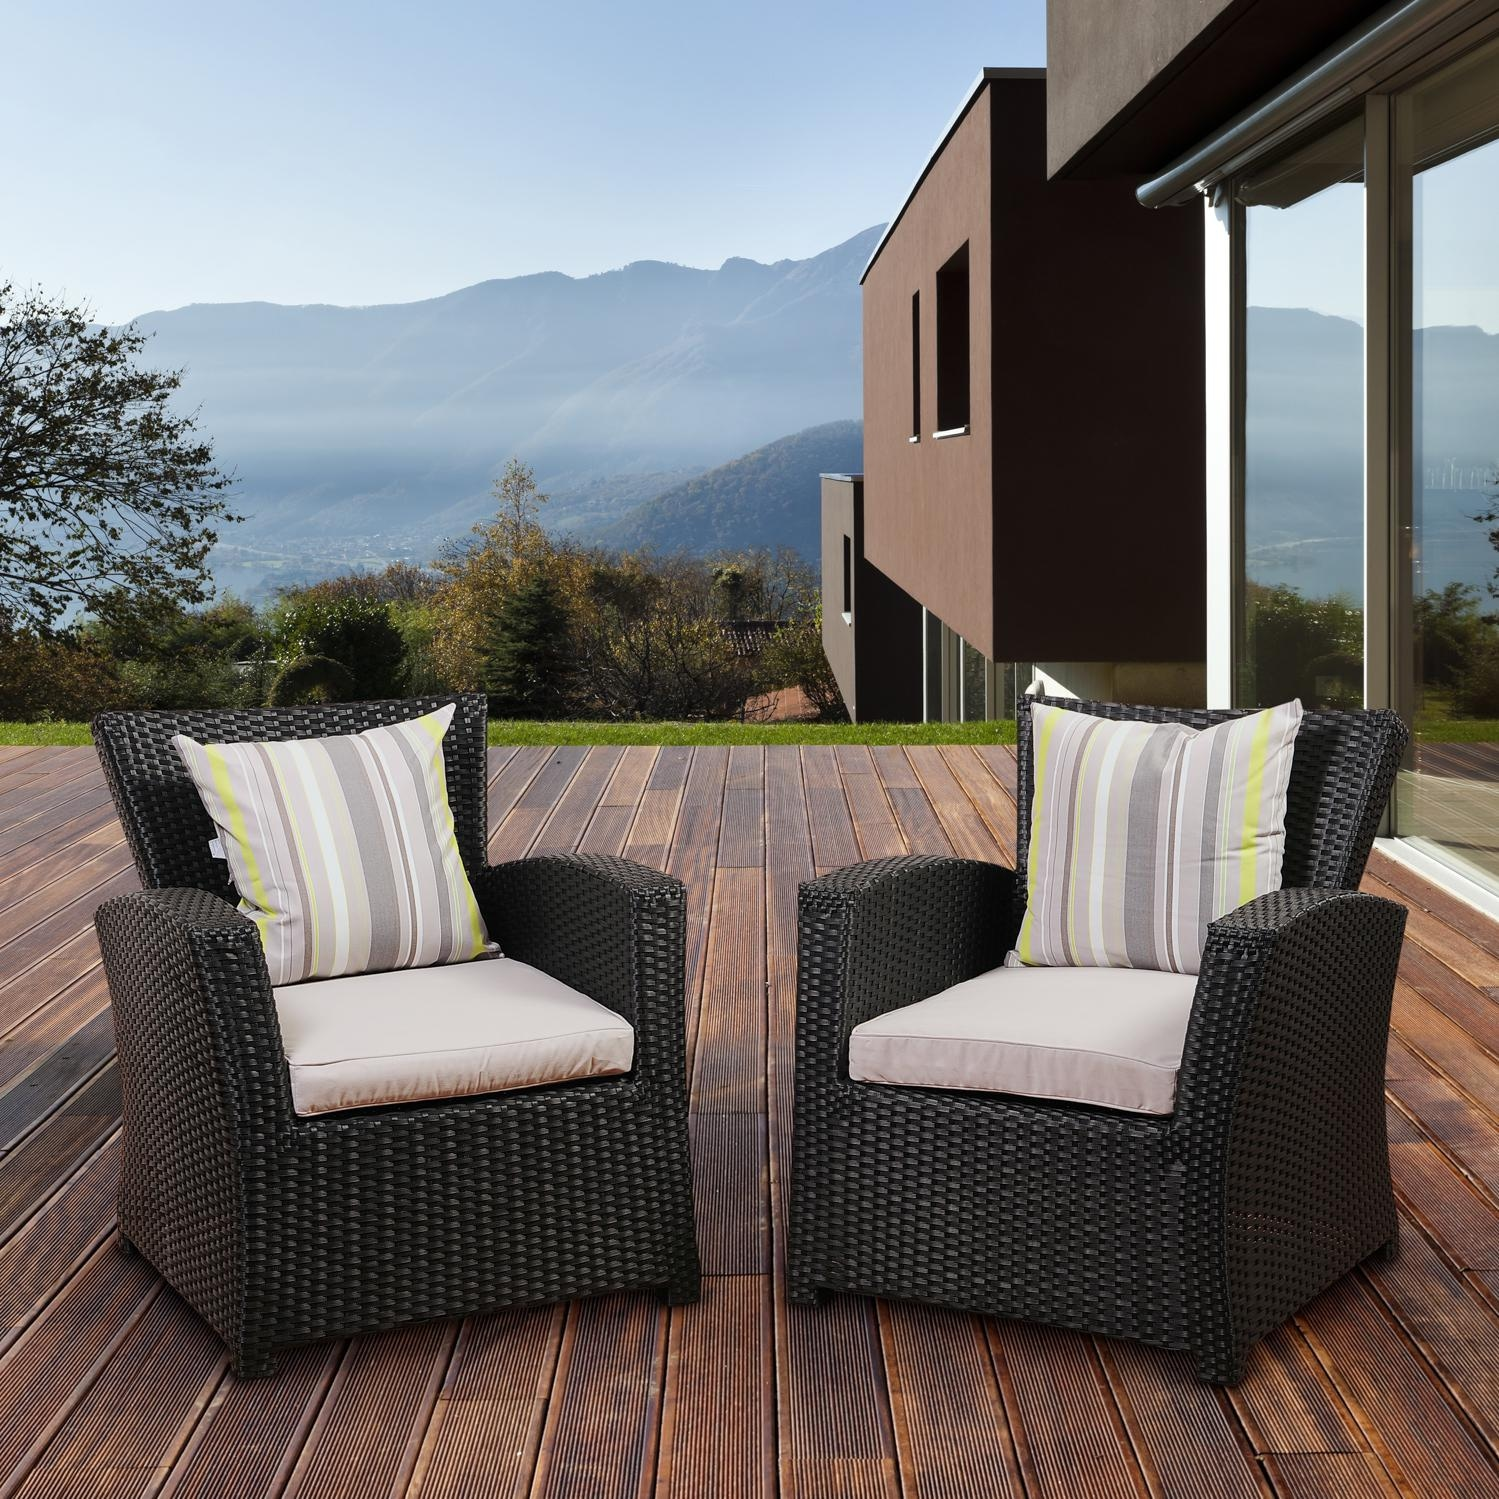 Outdoor Chair Set Atlantic Staffordshire Resin Wicker Patio Club Chair Set Of 2 Black